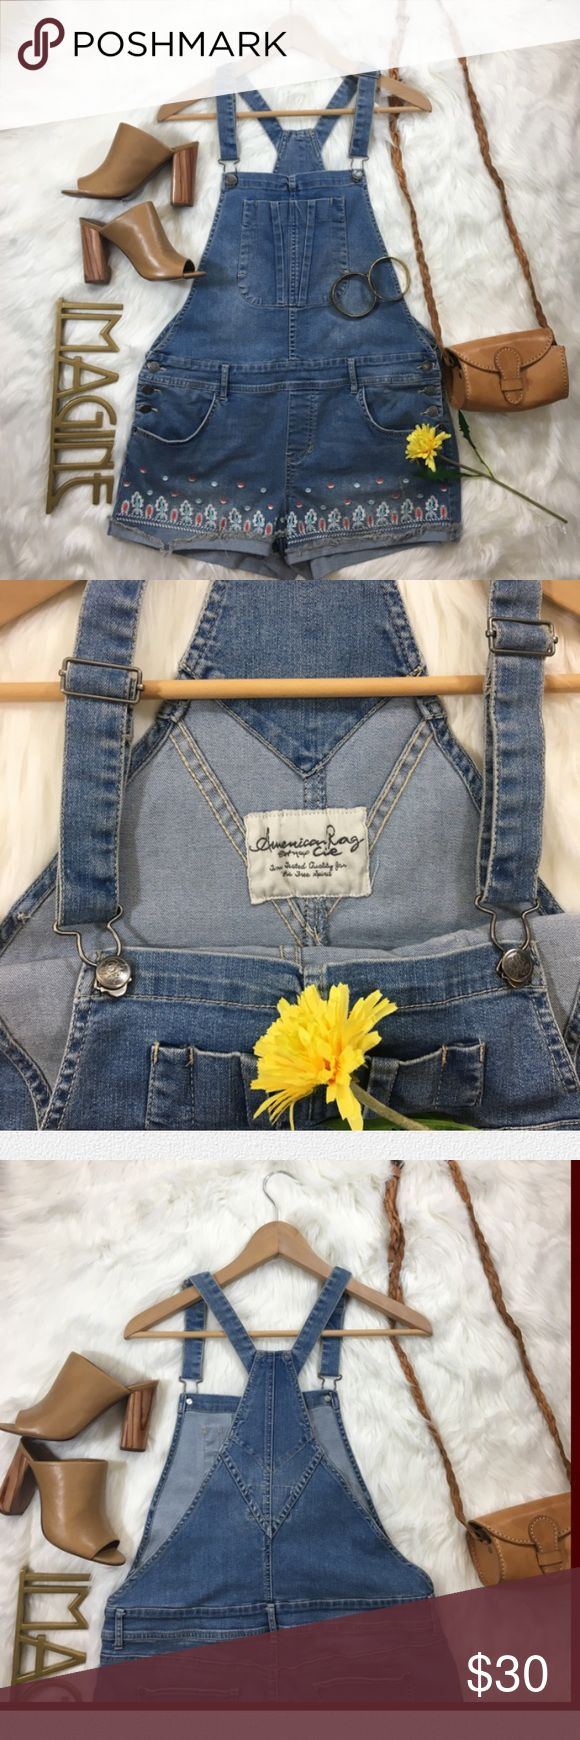 American Rag Jean Shorts Overalls SIZE 13 American Rag Jean Shorts Overalls With Embroideries❤️❤️❤️❤️ SIZE 13, 70%Cotton with Cute Embroideries on the bottoms of the overalls, Adjustable straps and has 3 buttons for closing/opening on both sides of the hips✨❤️✨  Feel free to offer a reasonable offer or bundle✨ American Rag Jeans Overalls